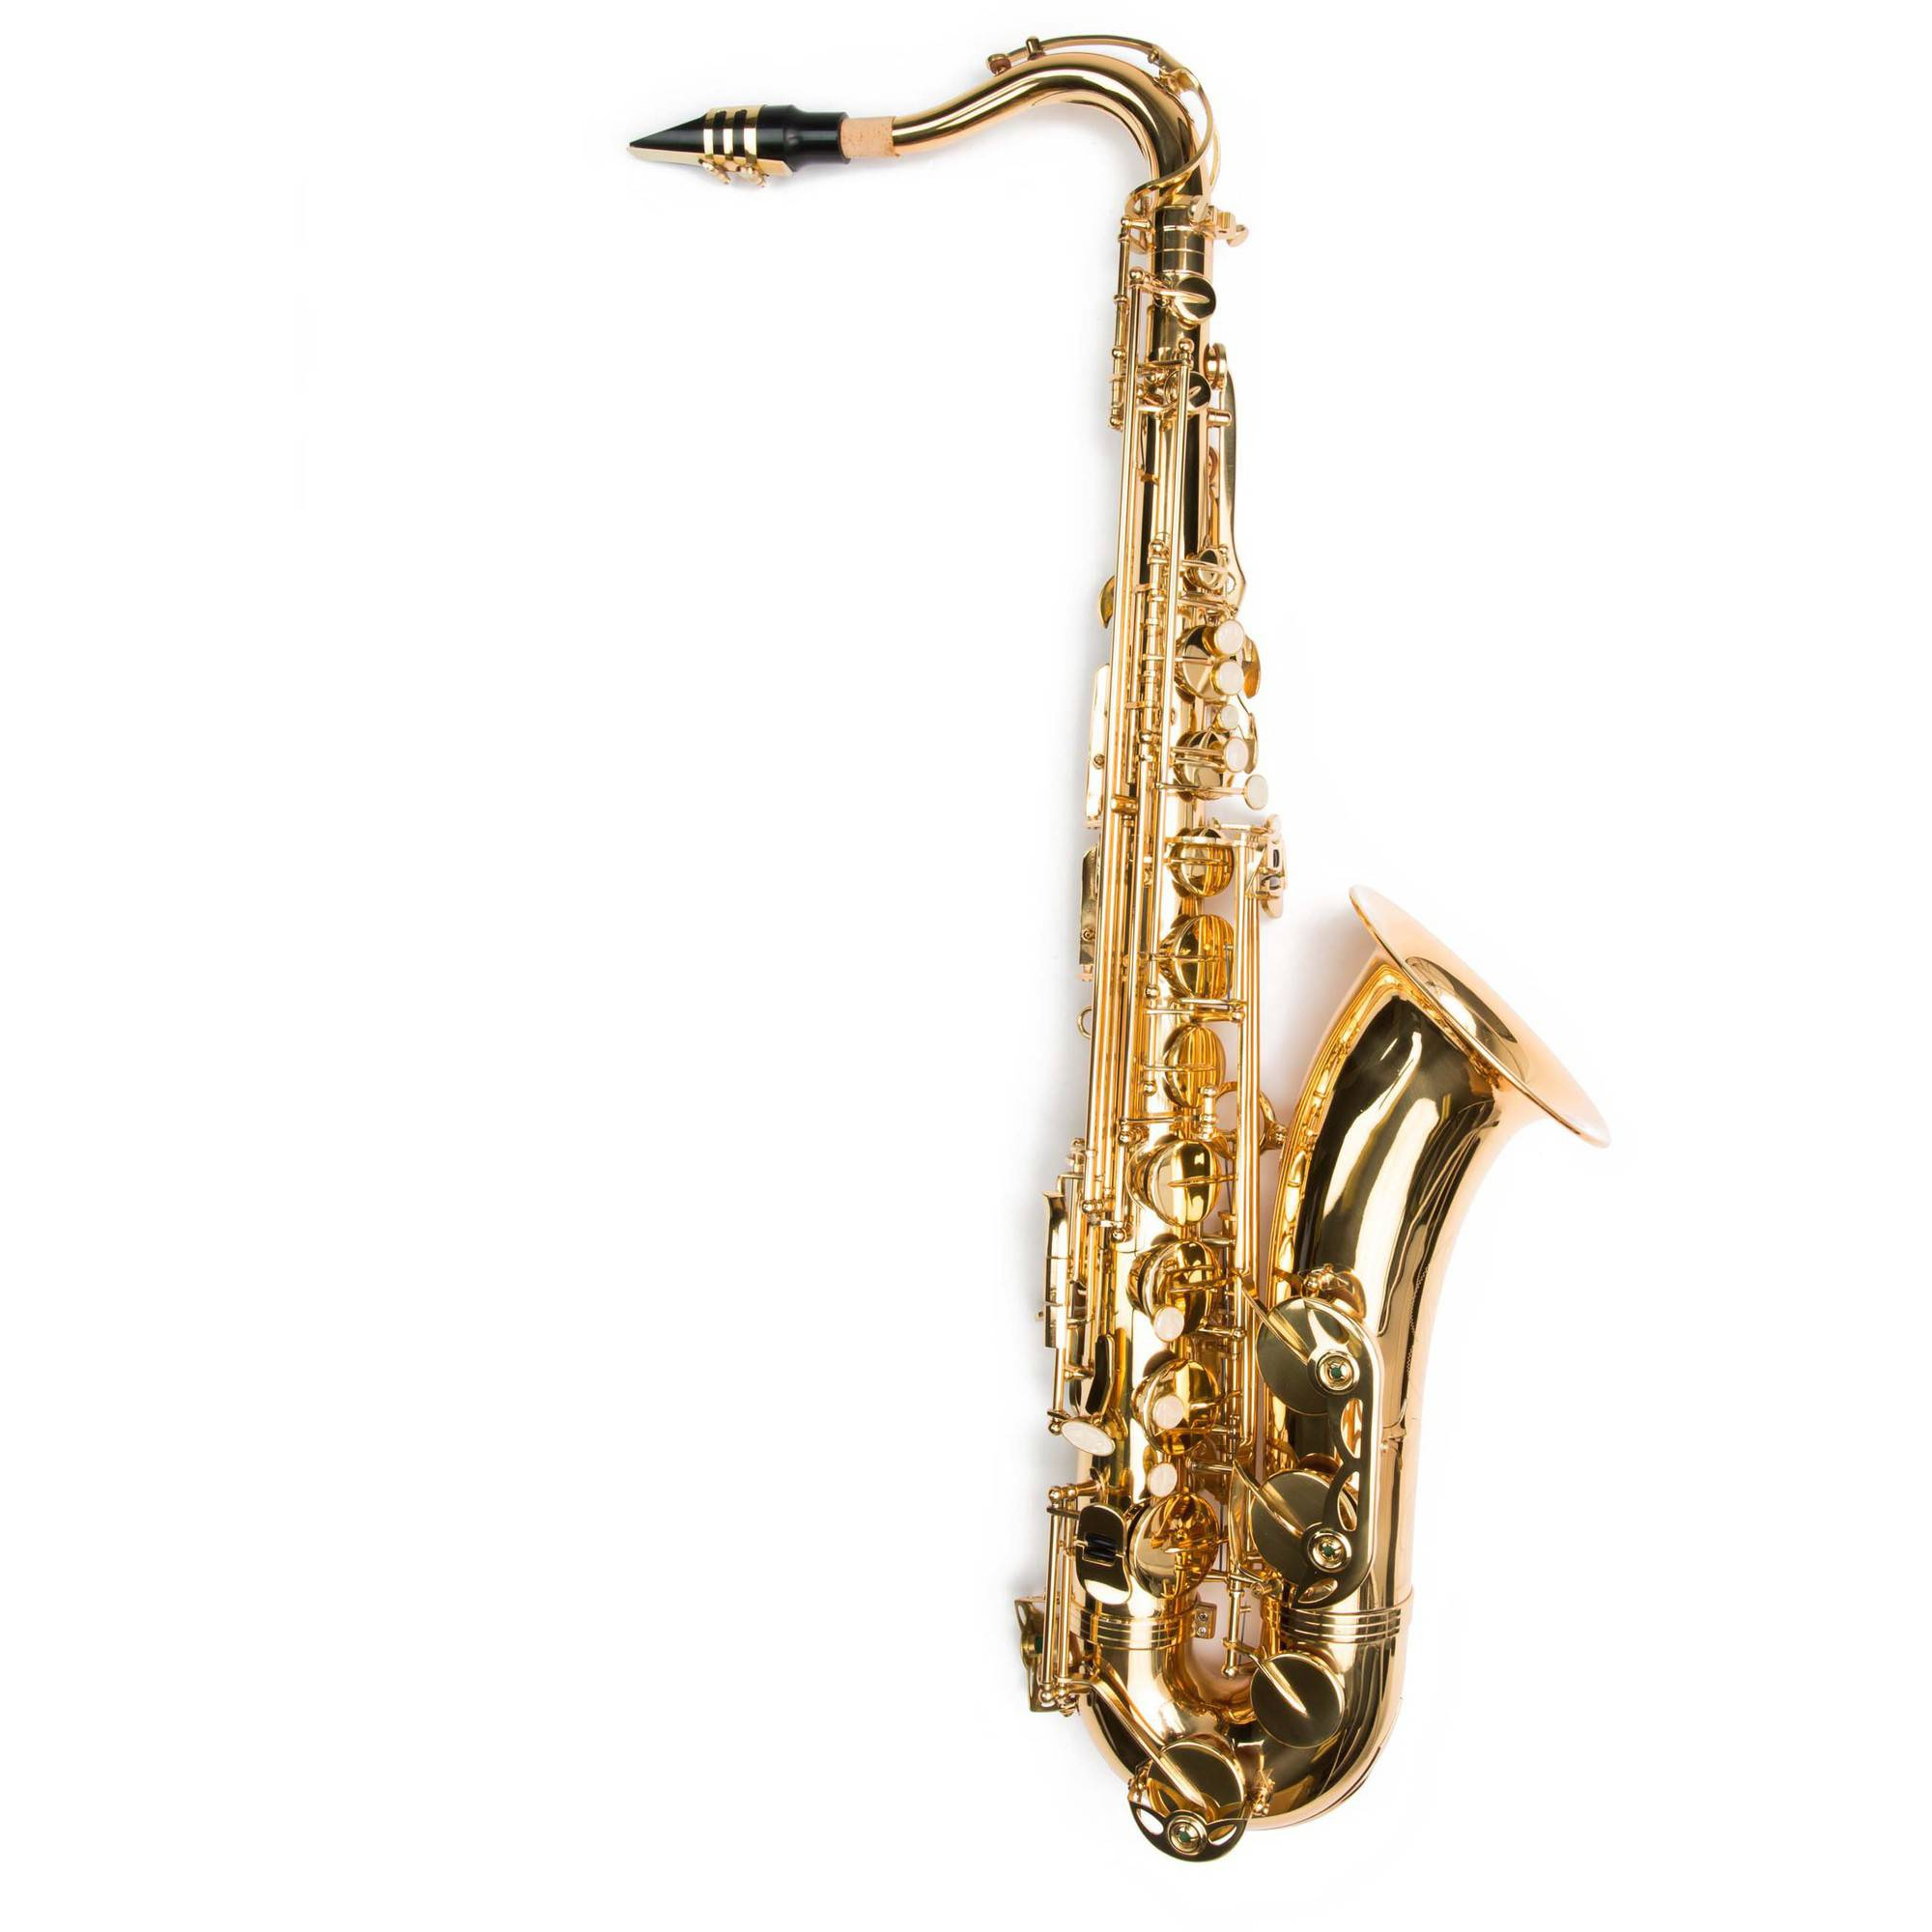 Kayata Tenor B Flat Student Saxphone with Carrying Bag and Cleaning Accessories, Gold-Lacquered